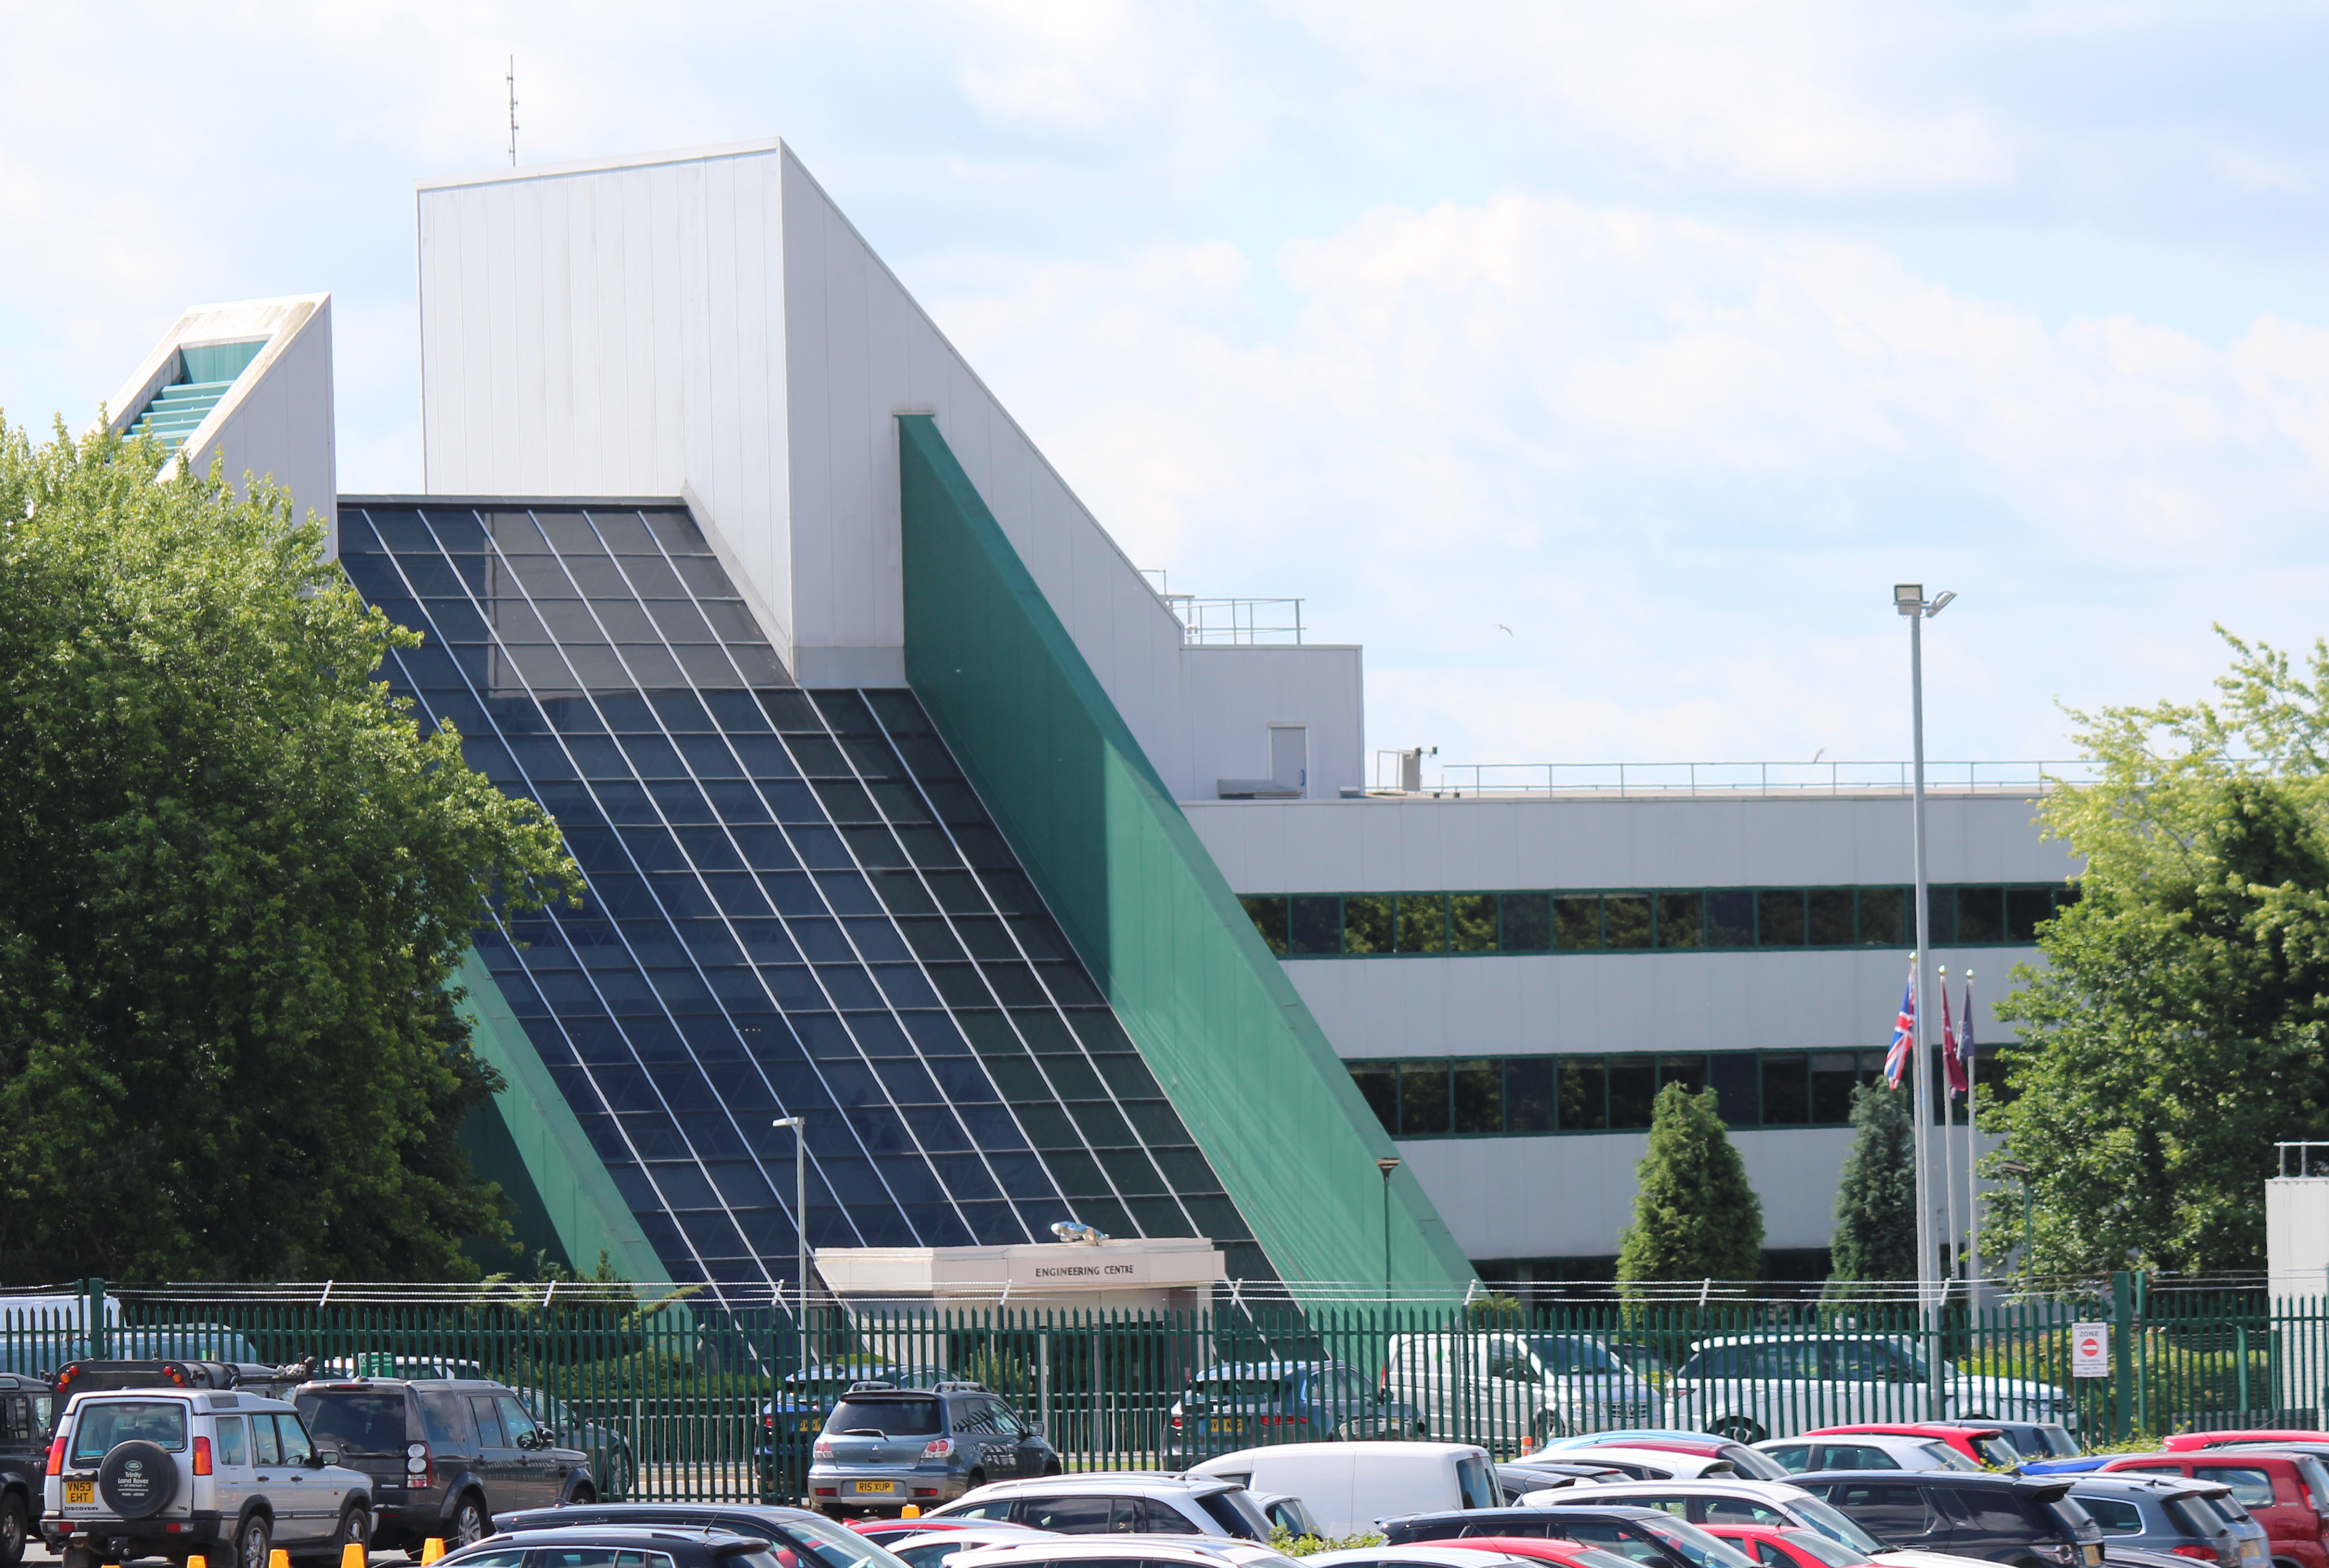 Discussion on expansion plans for Jaguar Land Rover at Whitley